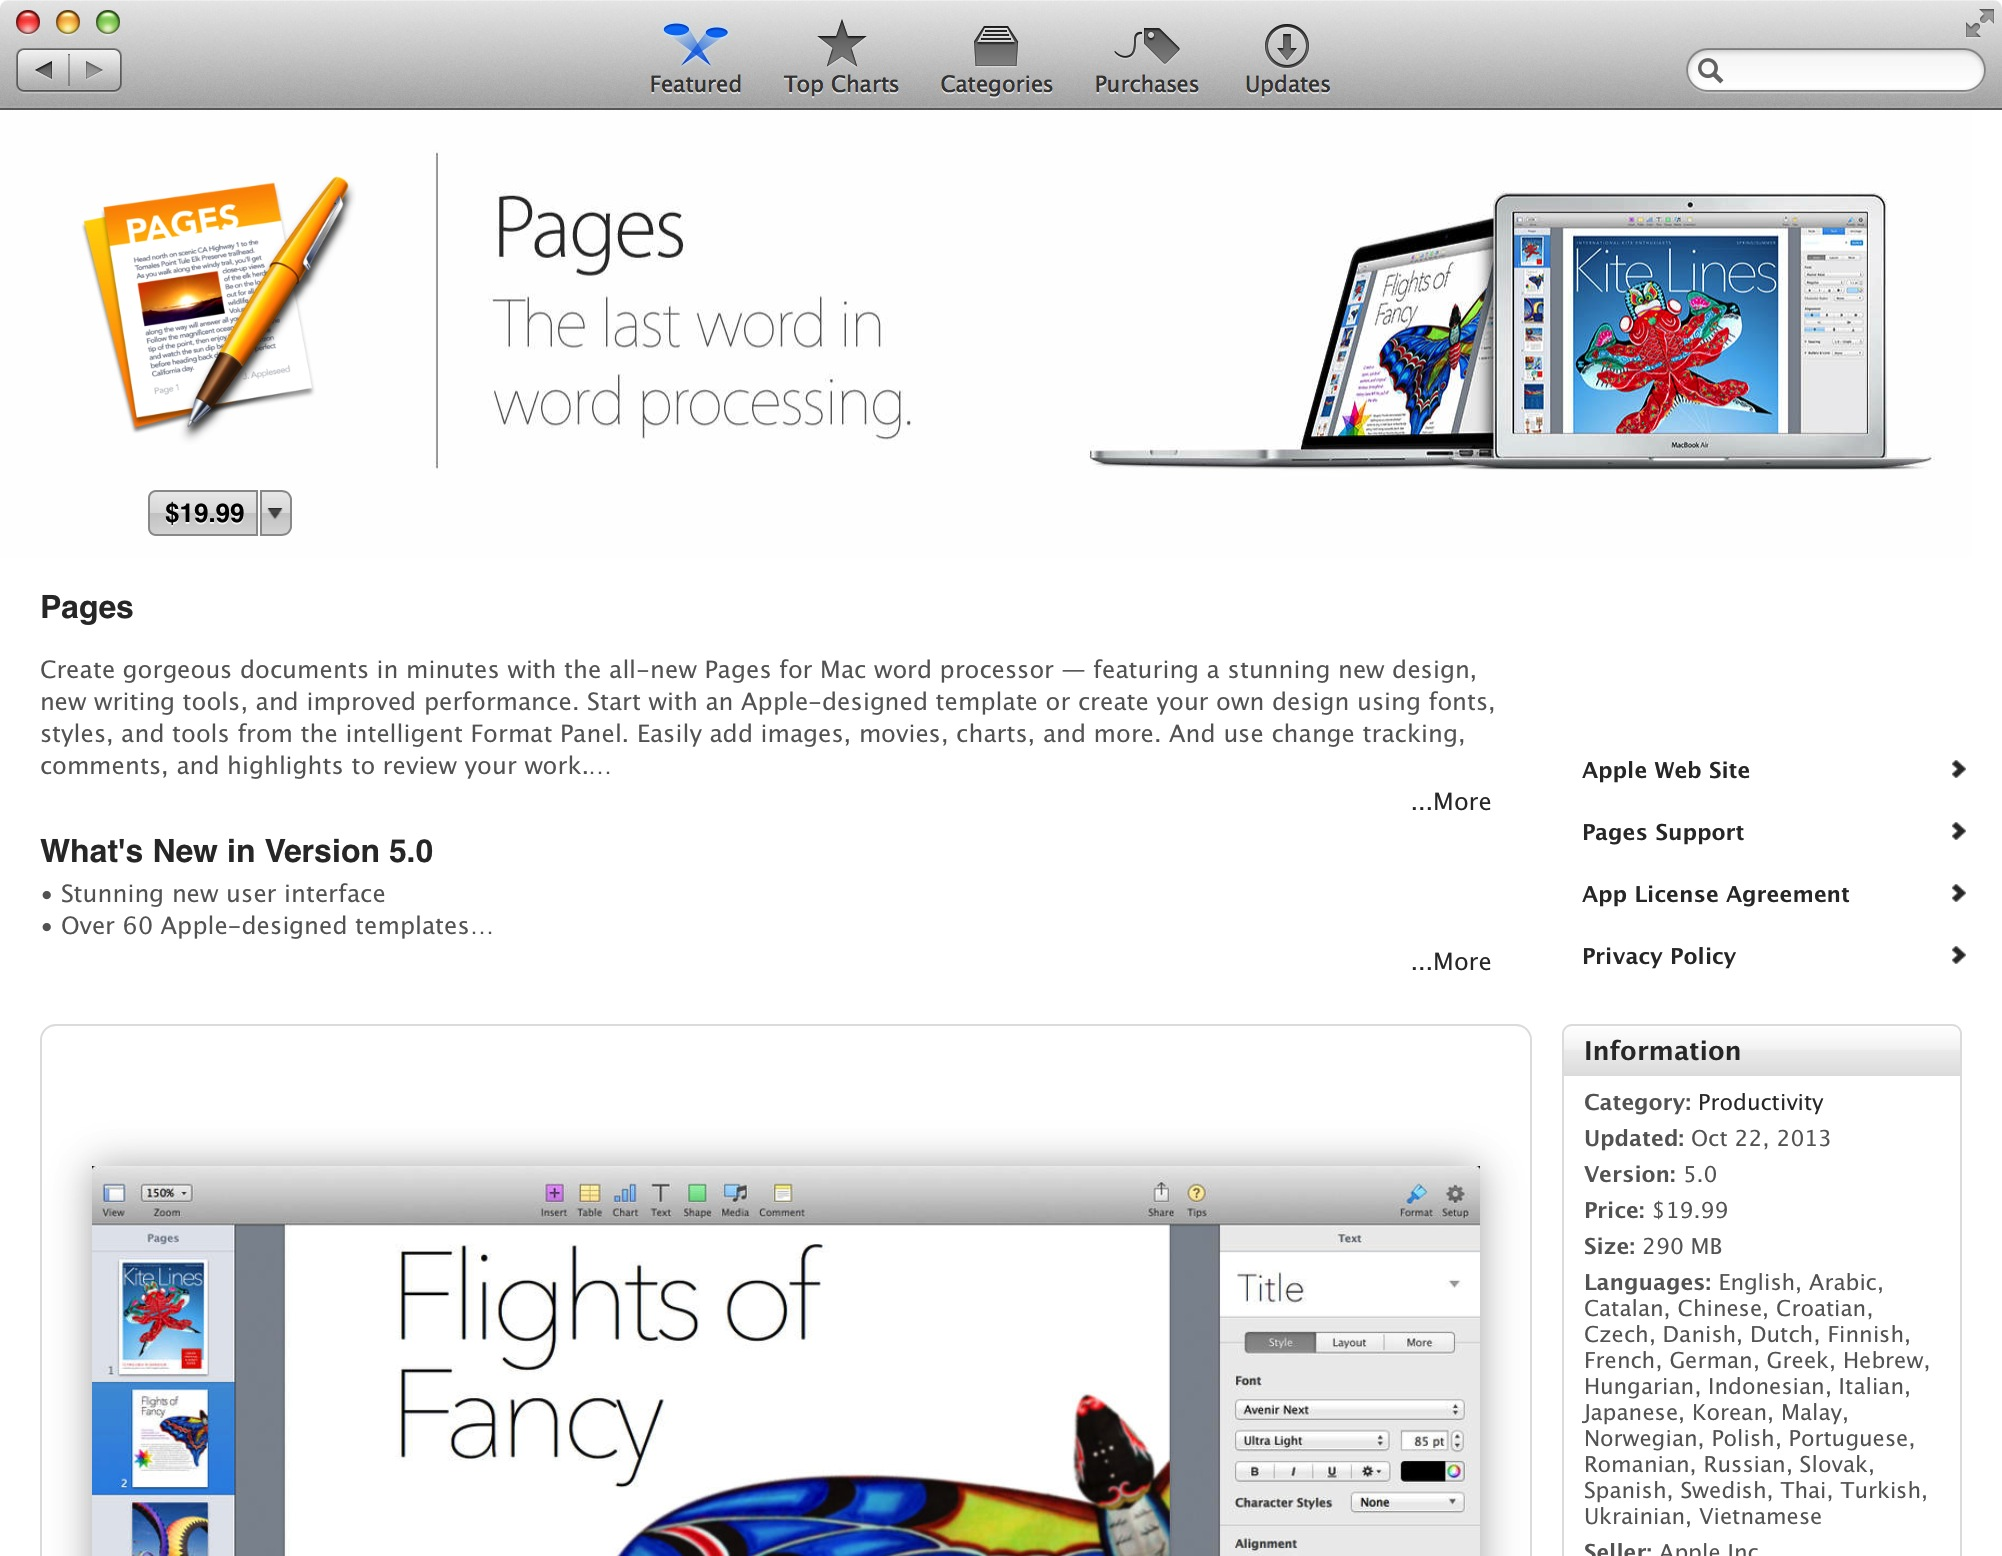 How To Update Pages On Mac